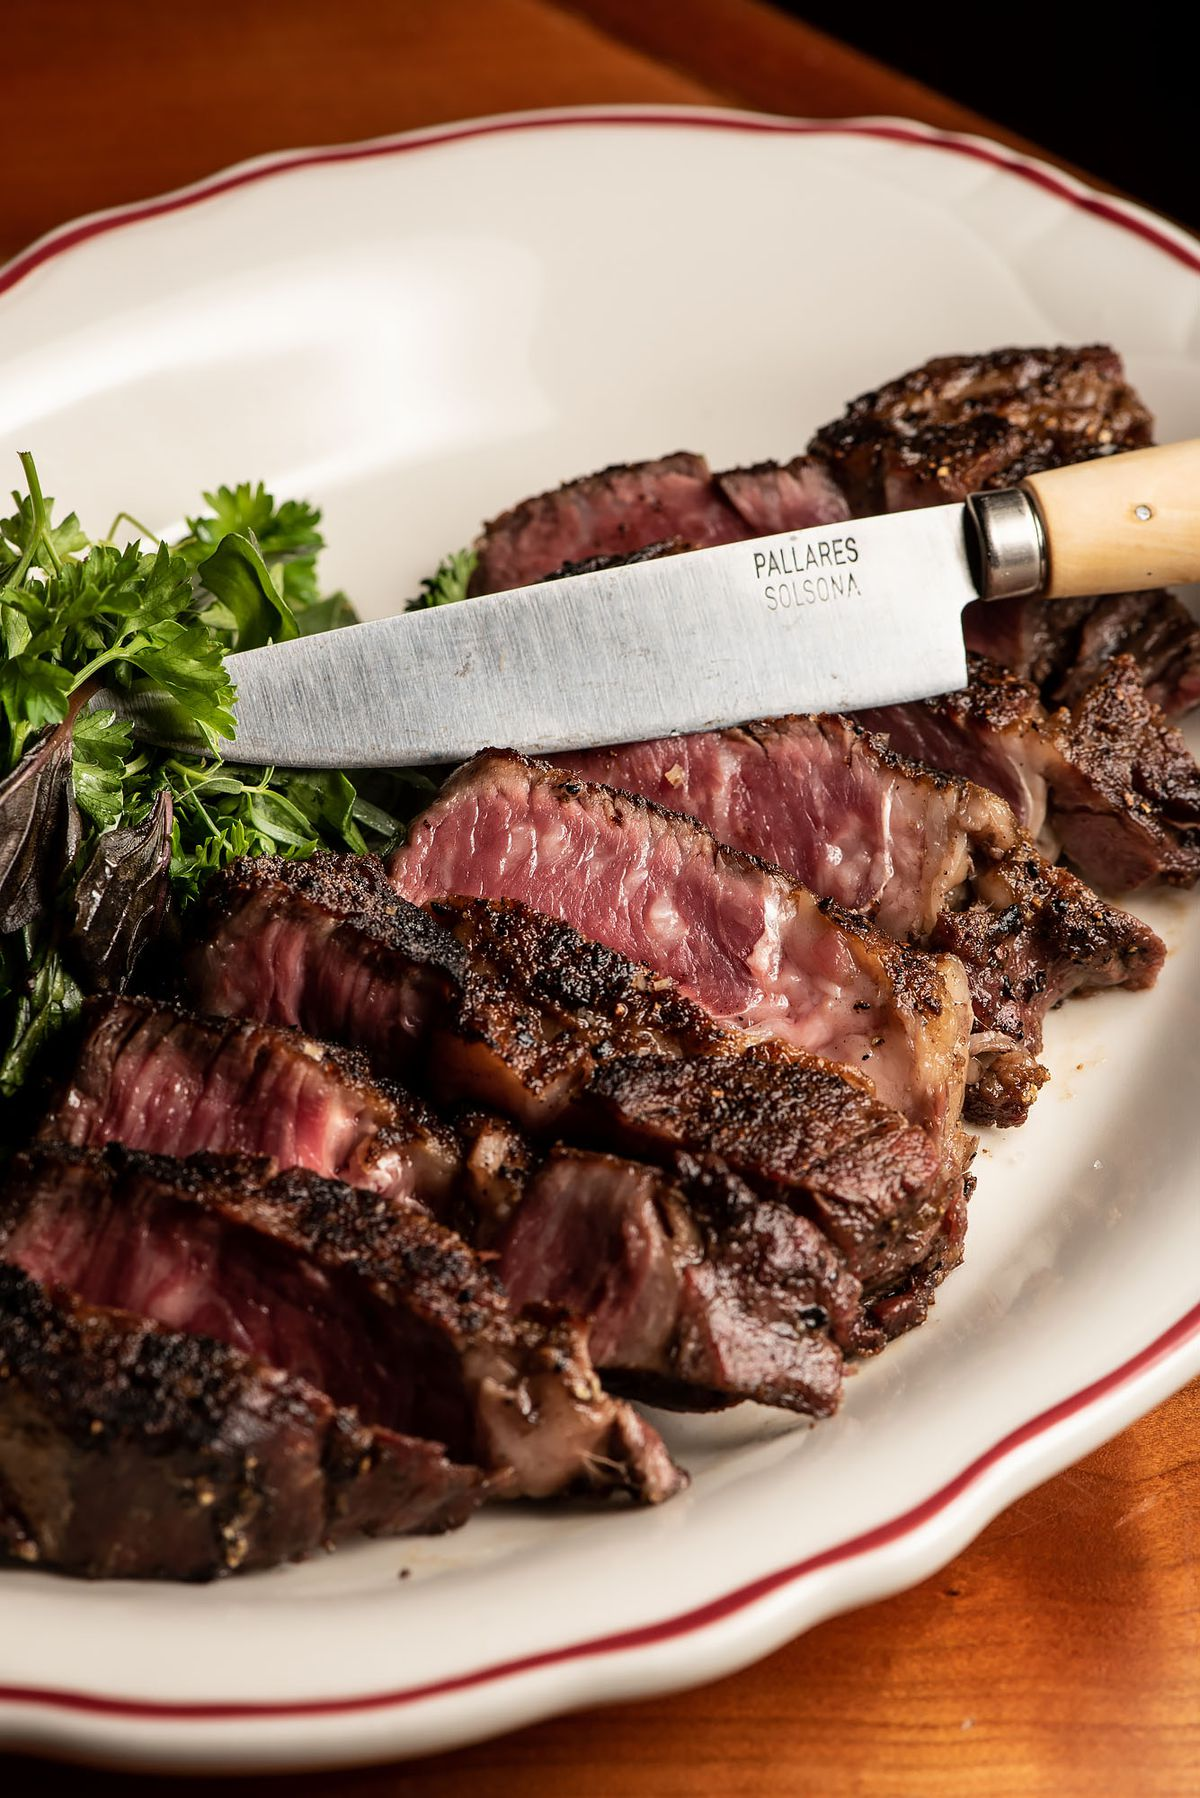 A rare steak cut into section, with knife on top.